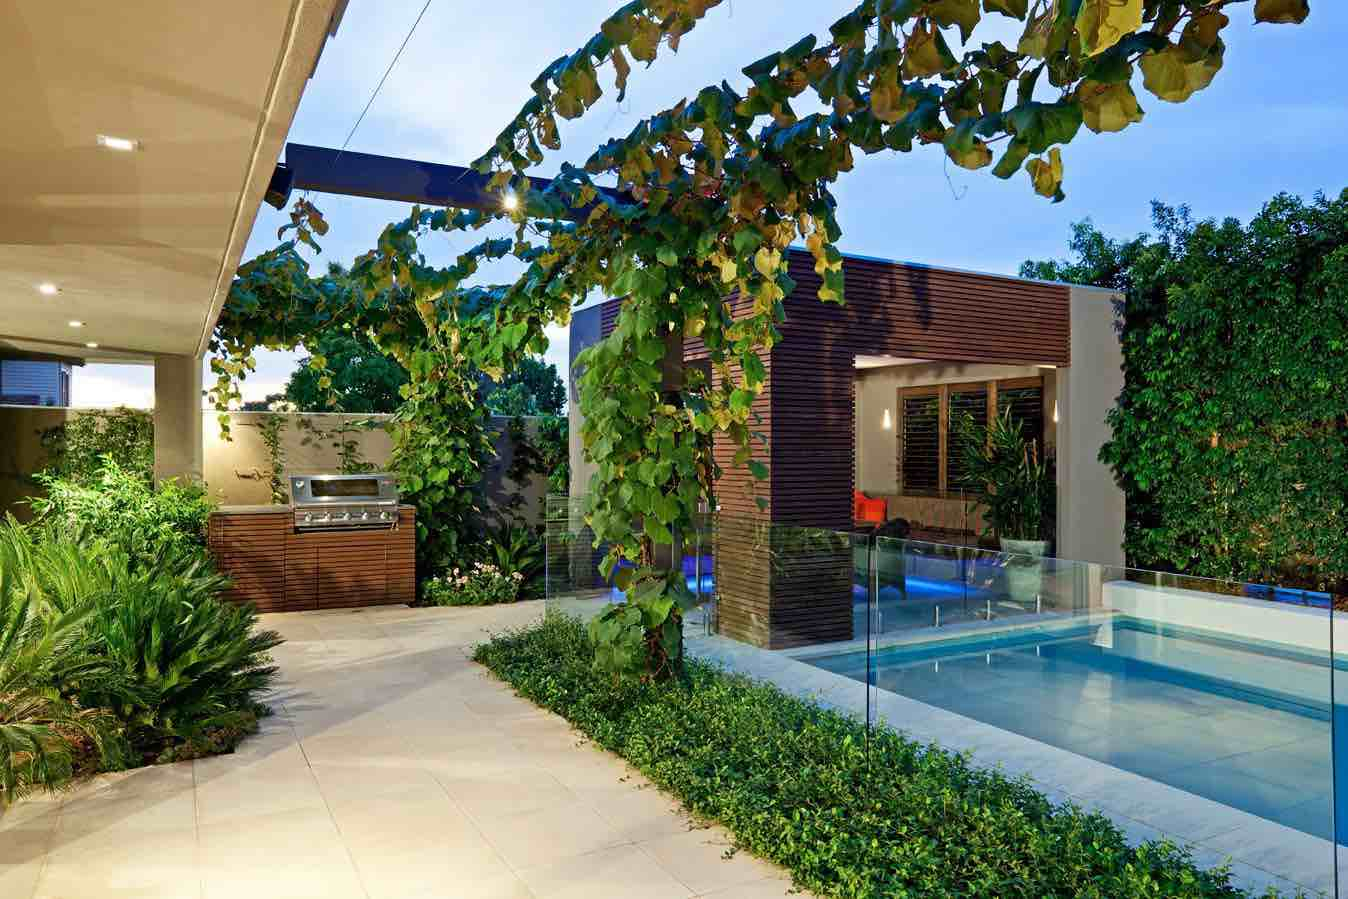 41 backyard design ideas for small yards worthminer for Small backyard pool ideas